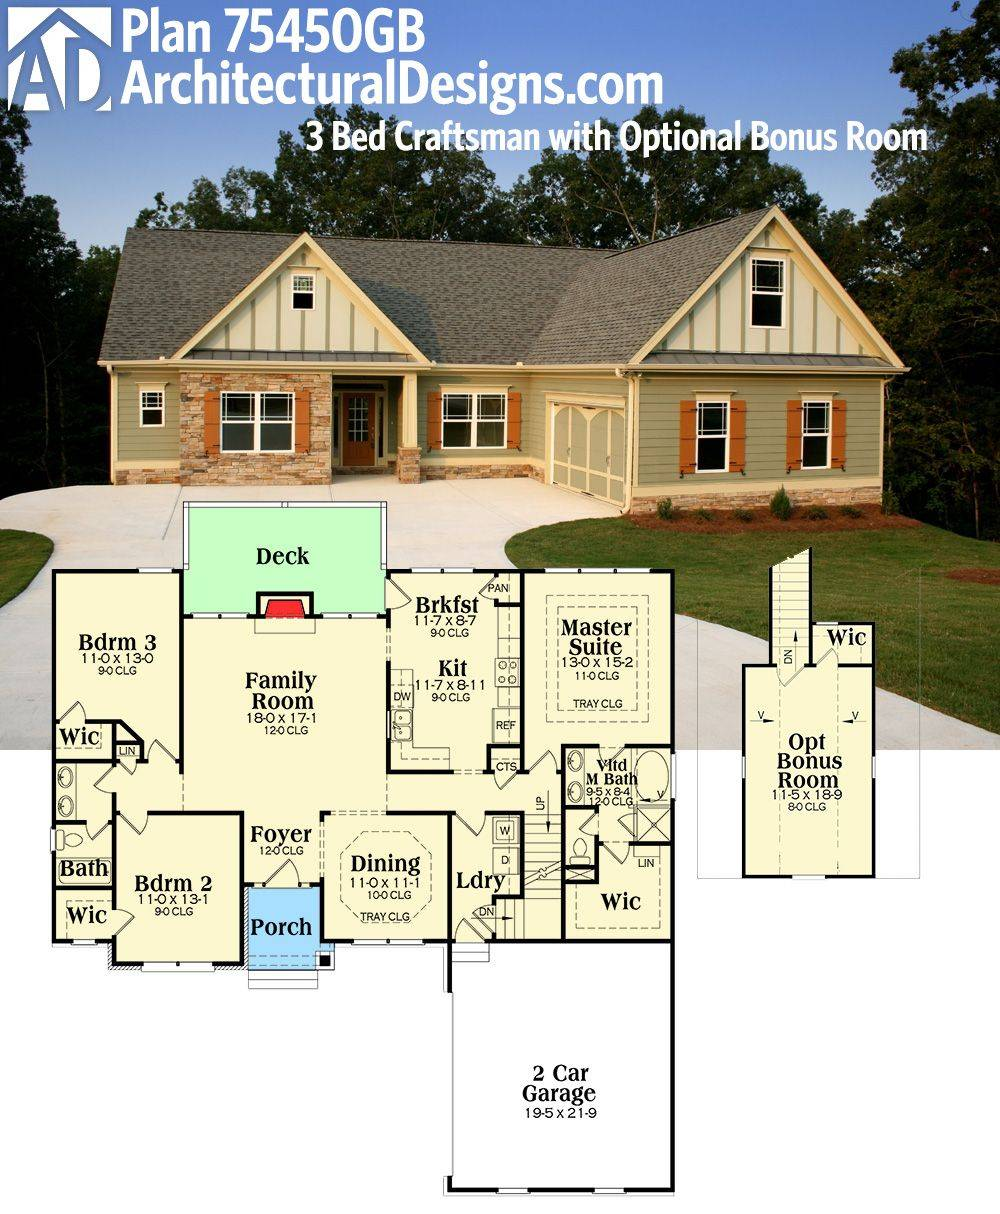 Architectural Designs House Plan Gives One